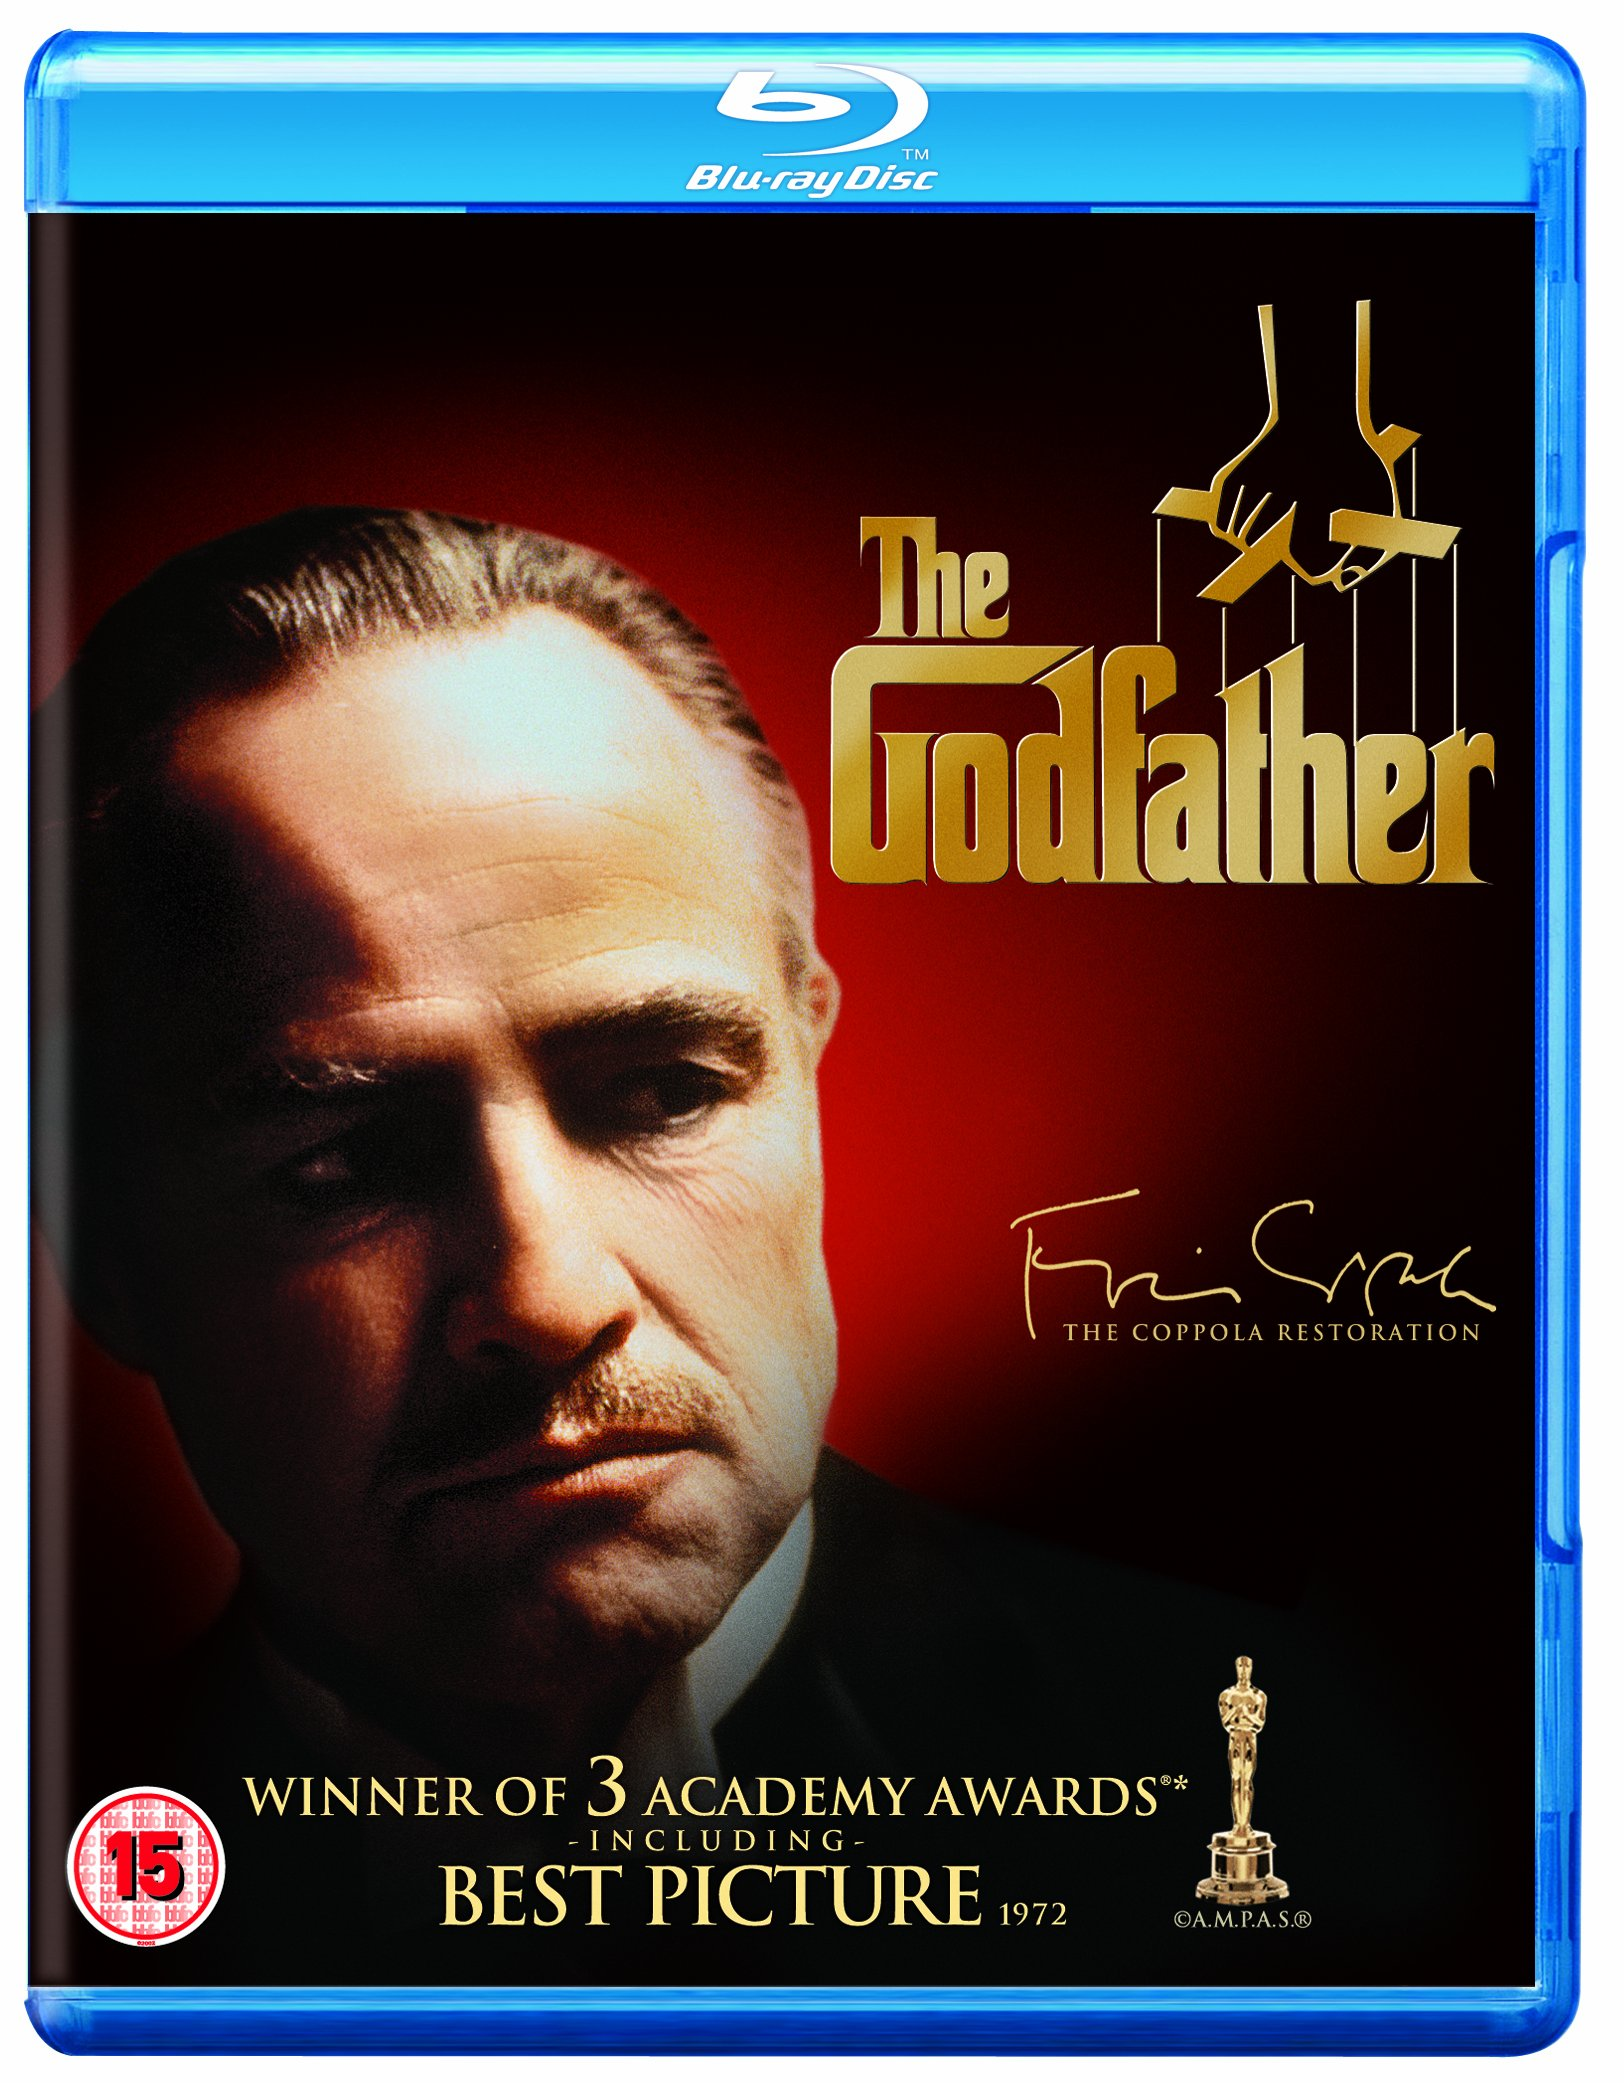 教父[三部曲].The.Godfather.Trilogy.1972-1974-1990.720p.BluRay.x264-PublicHD